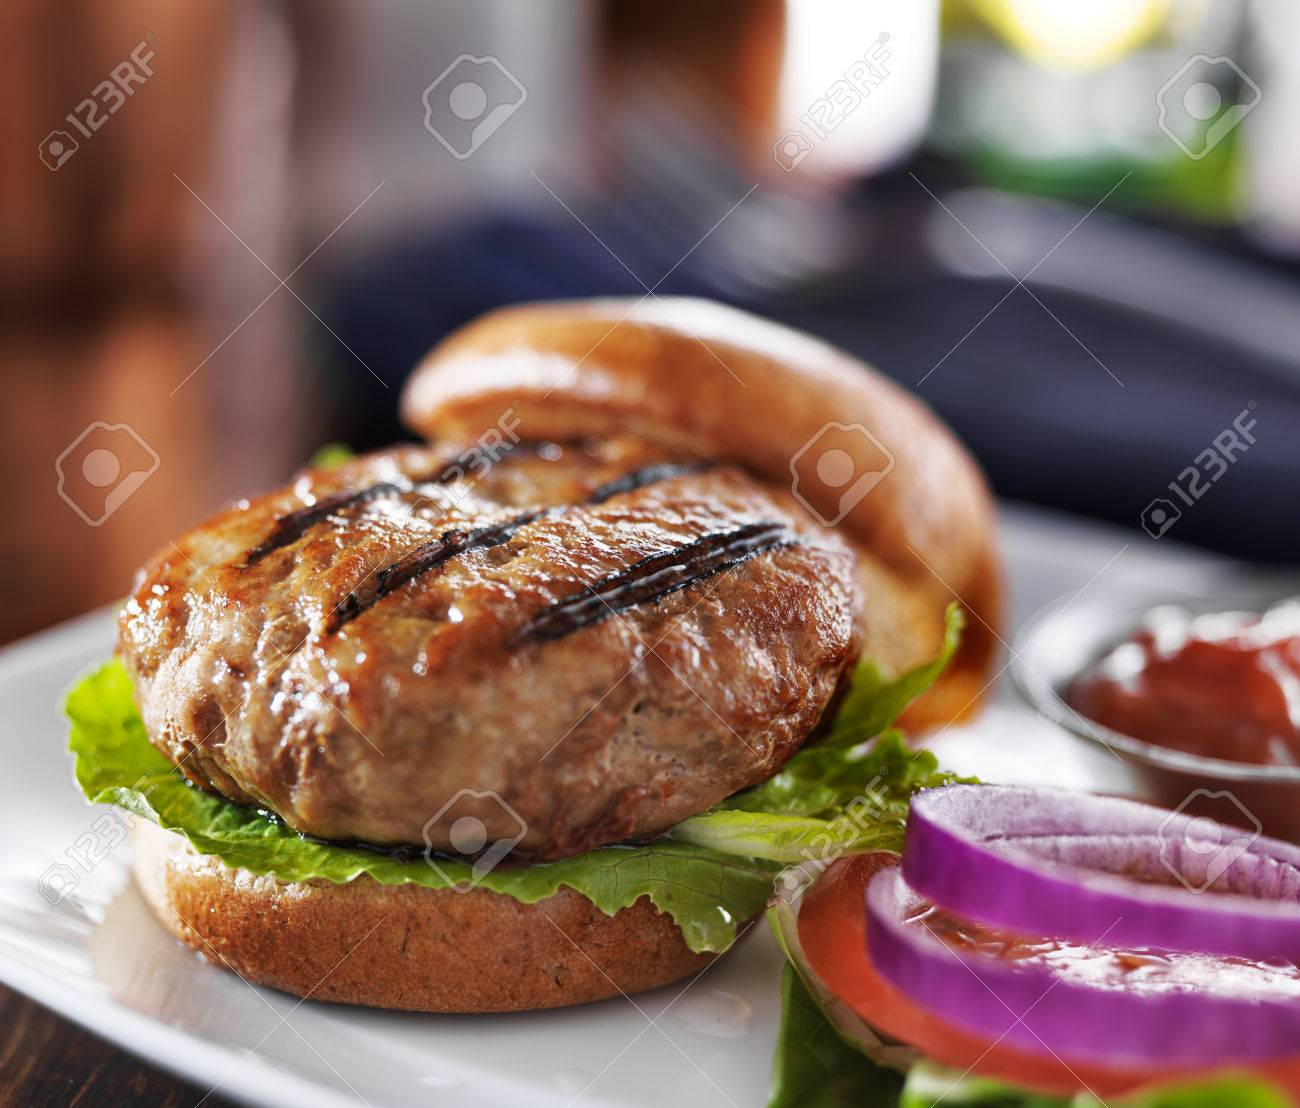 turkey burger on bun with lettuce and fixings - 35534128